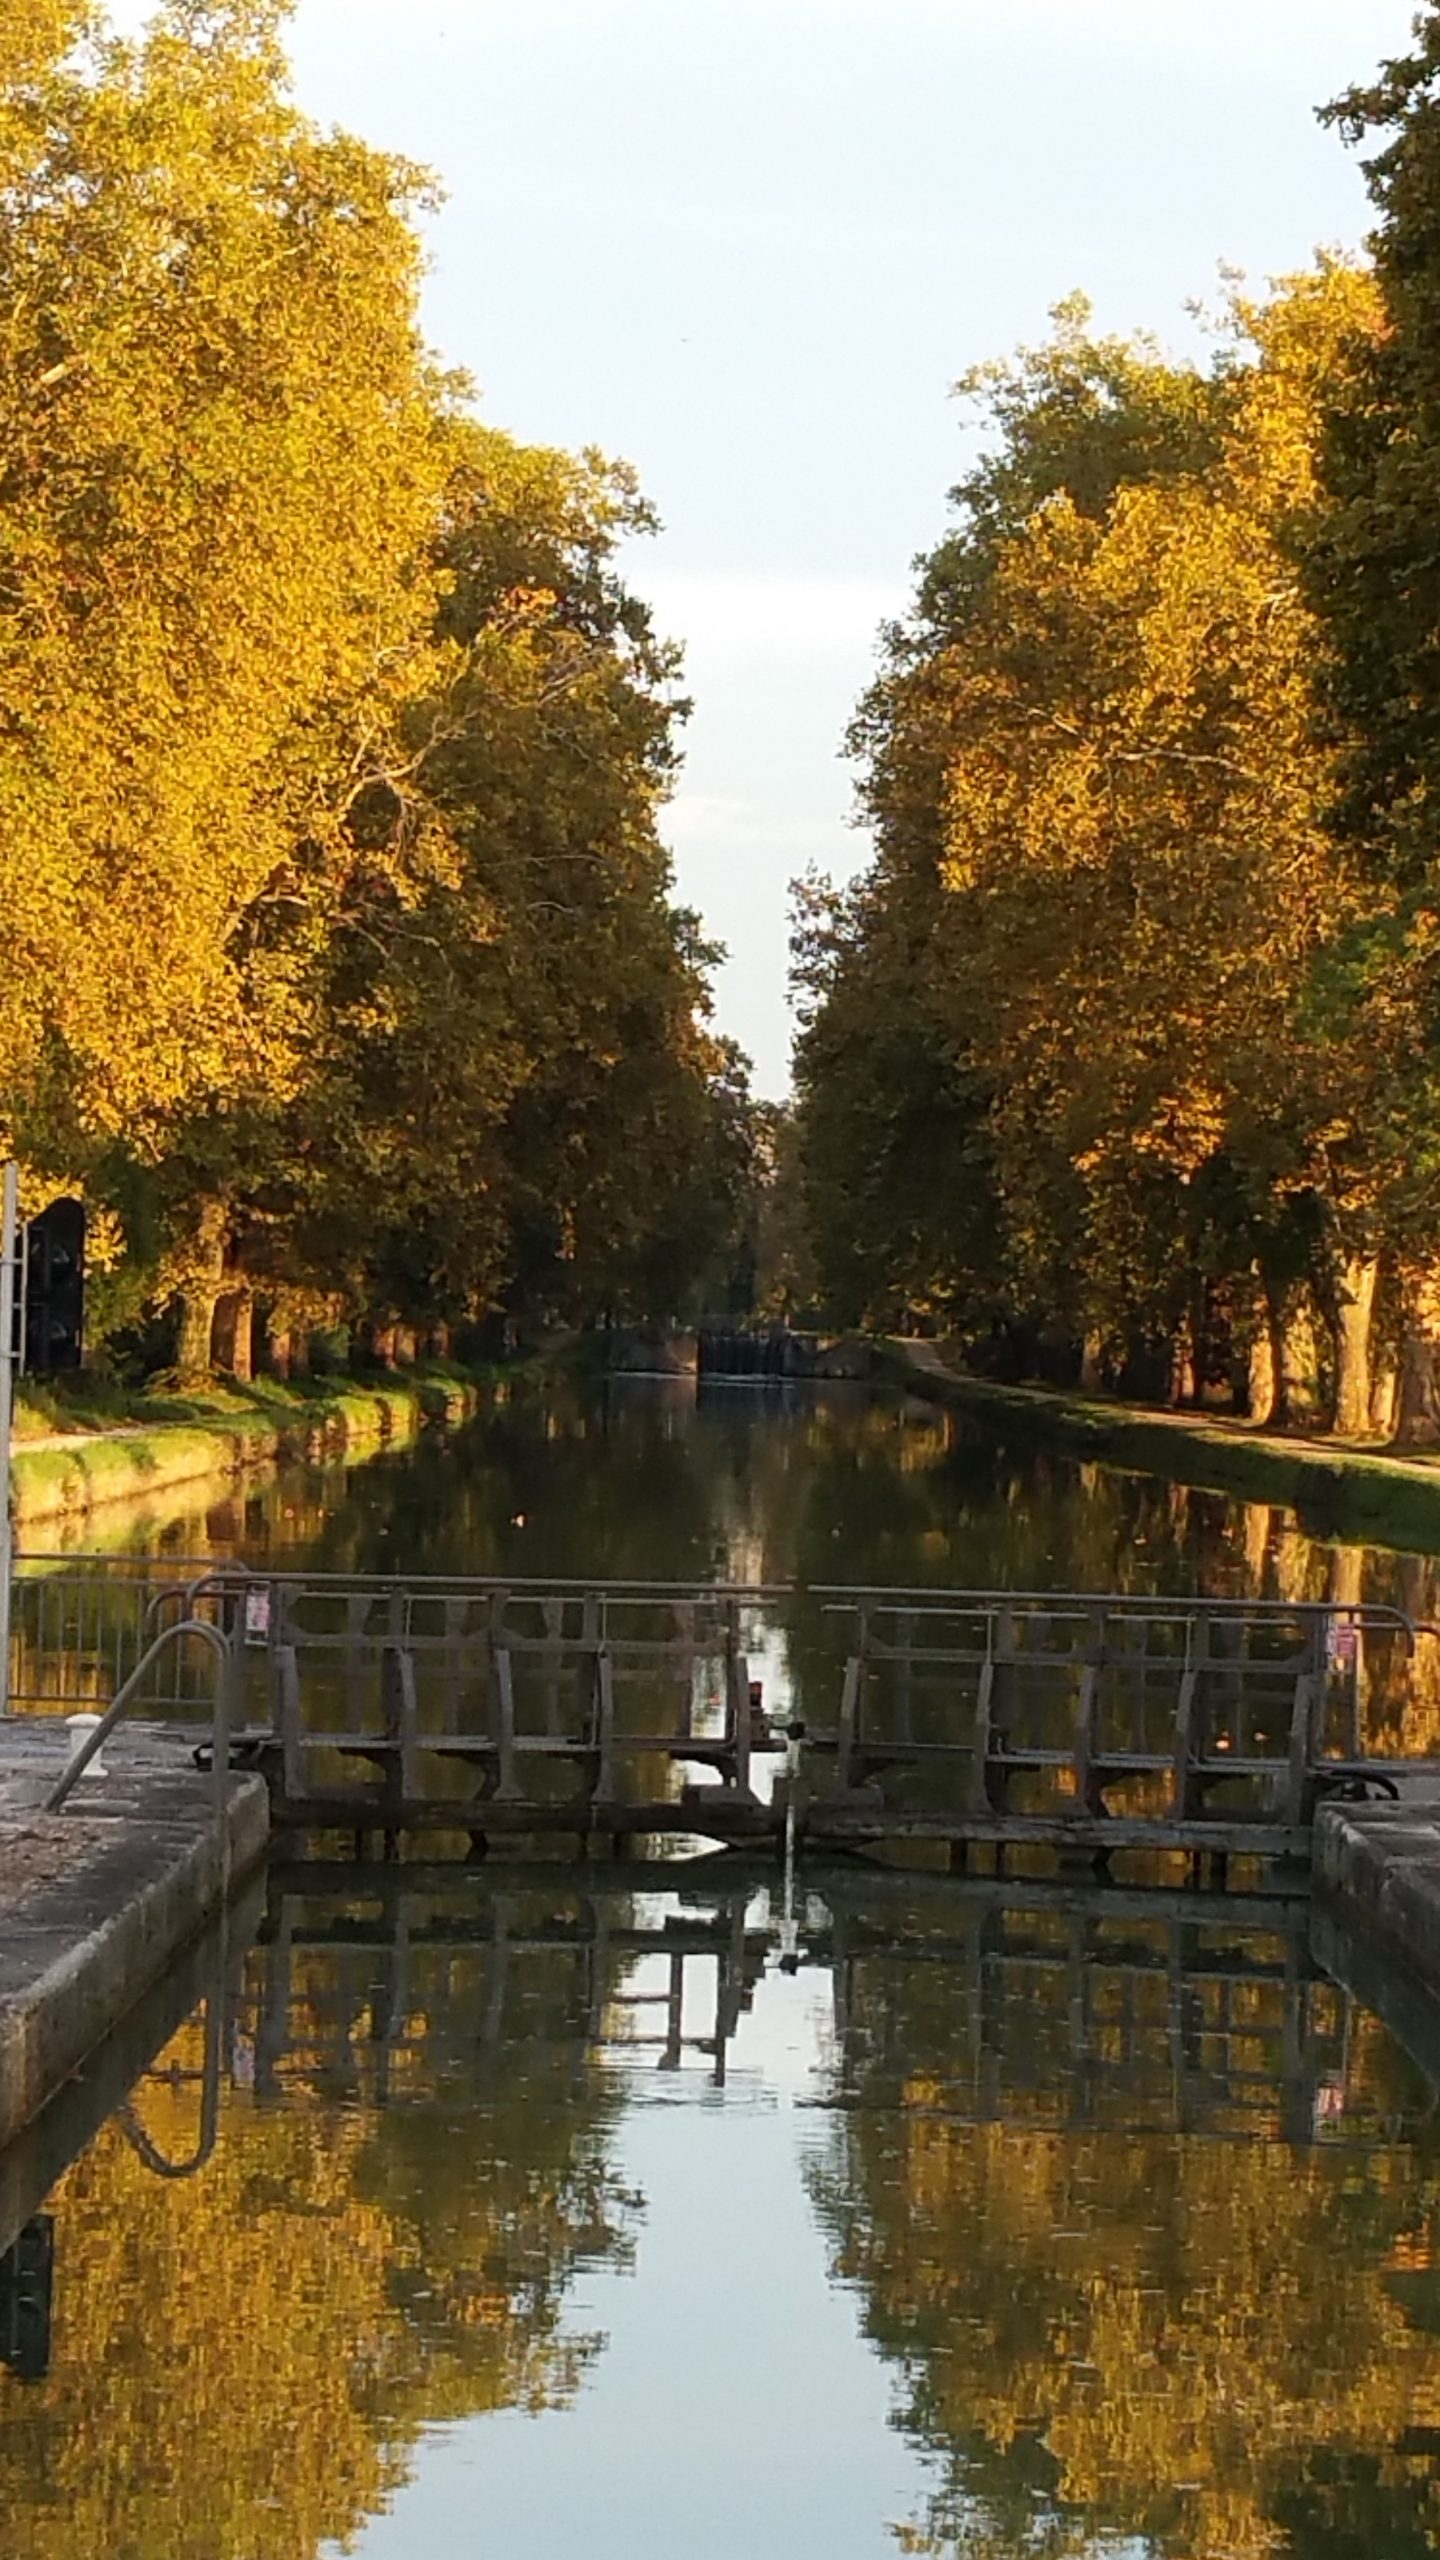 June canal